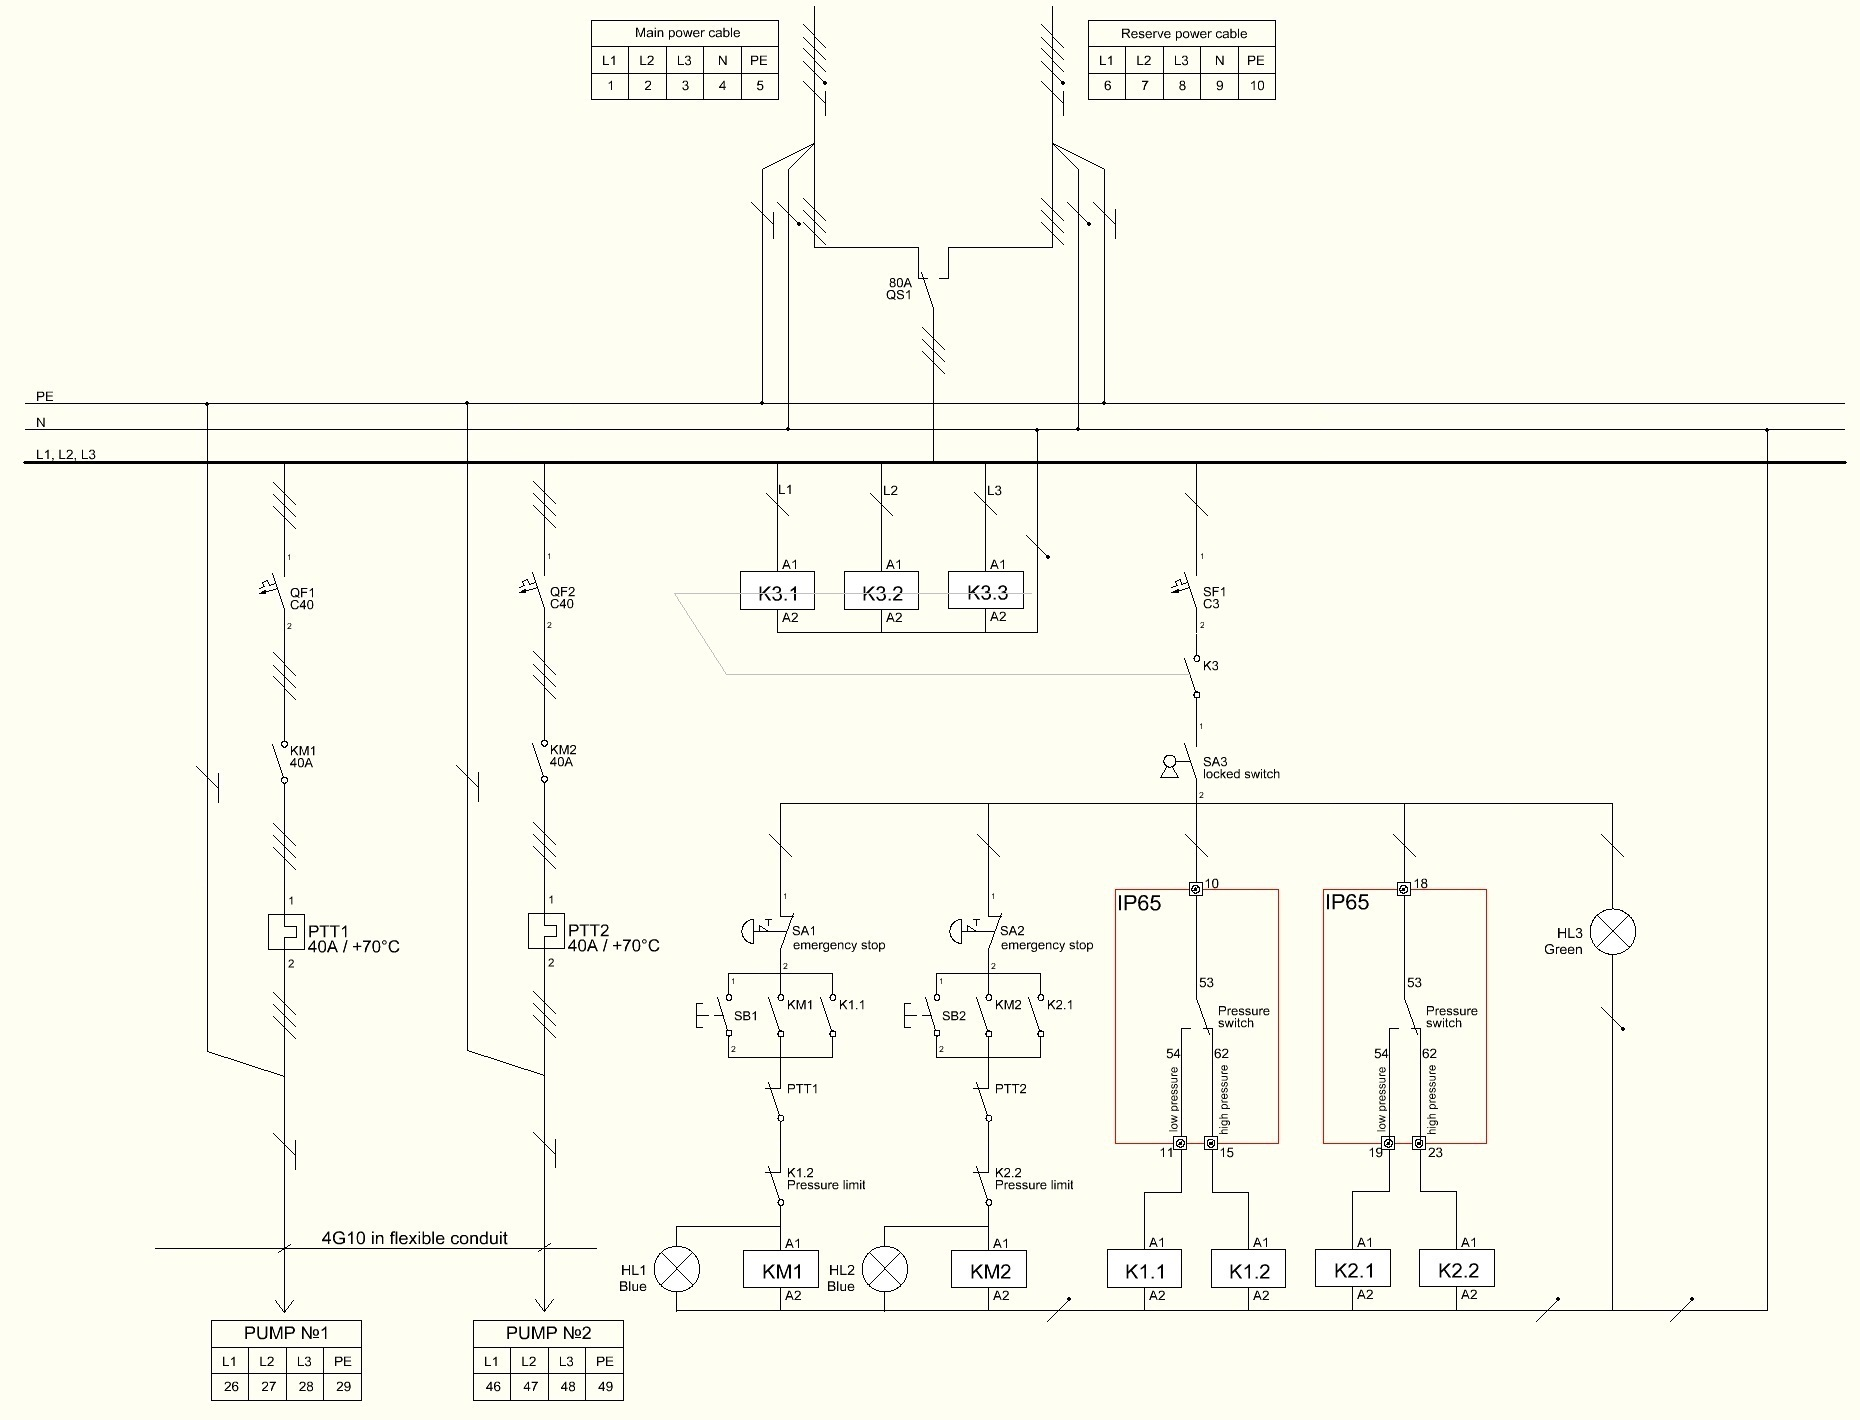 Filewiring Diagram Of Motor Control Centre On Pump Station Wiring Schematics In Series